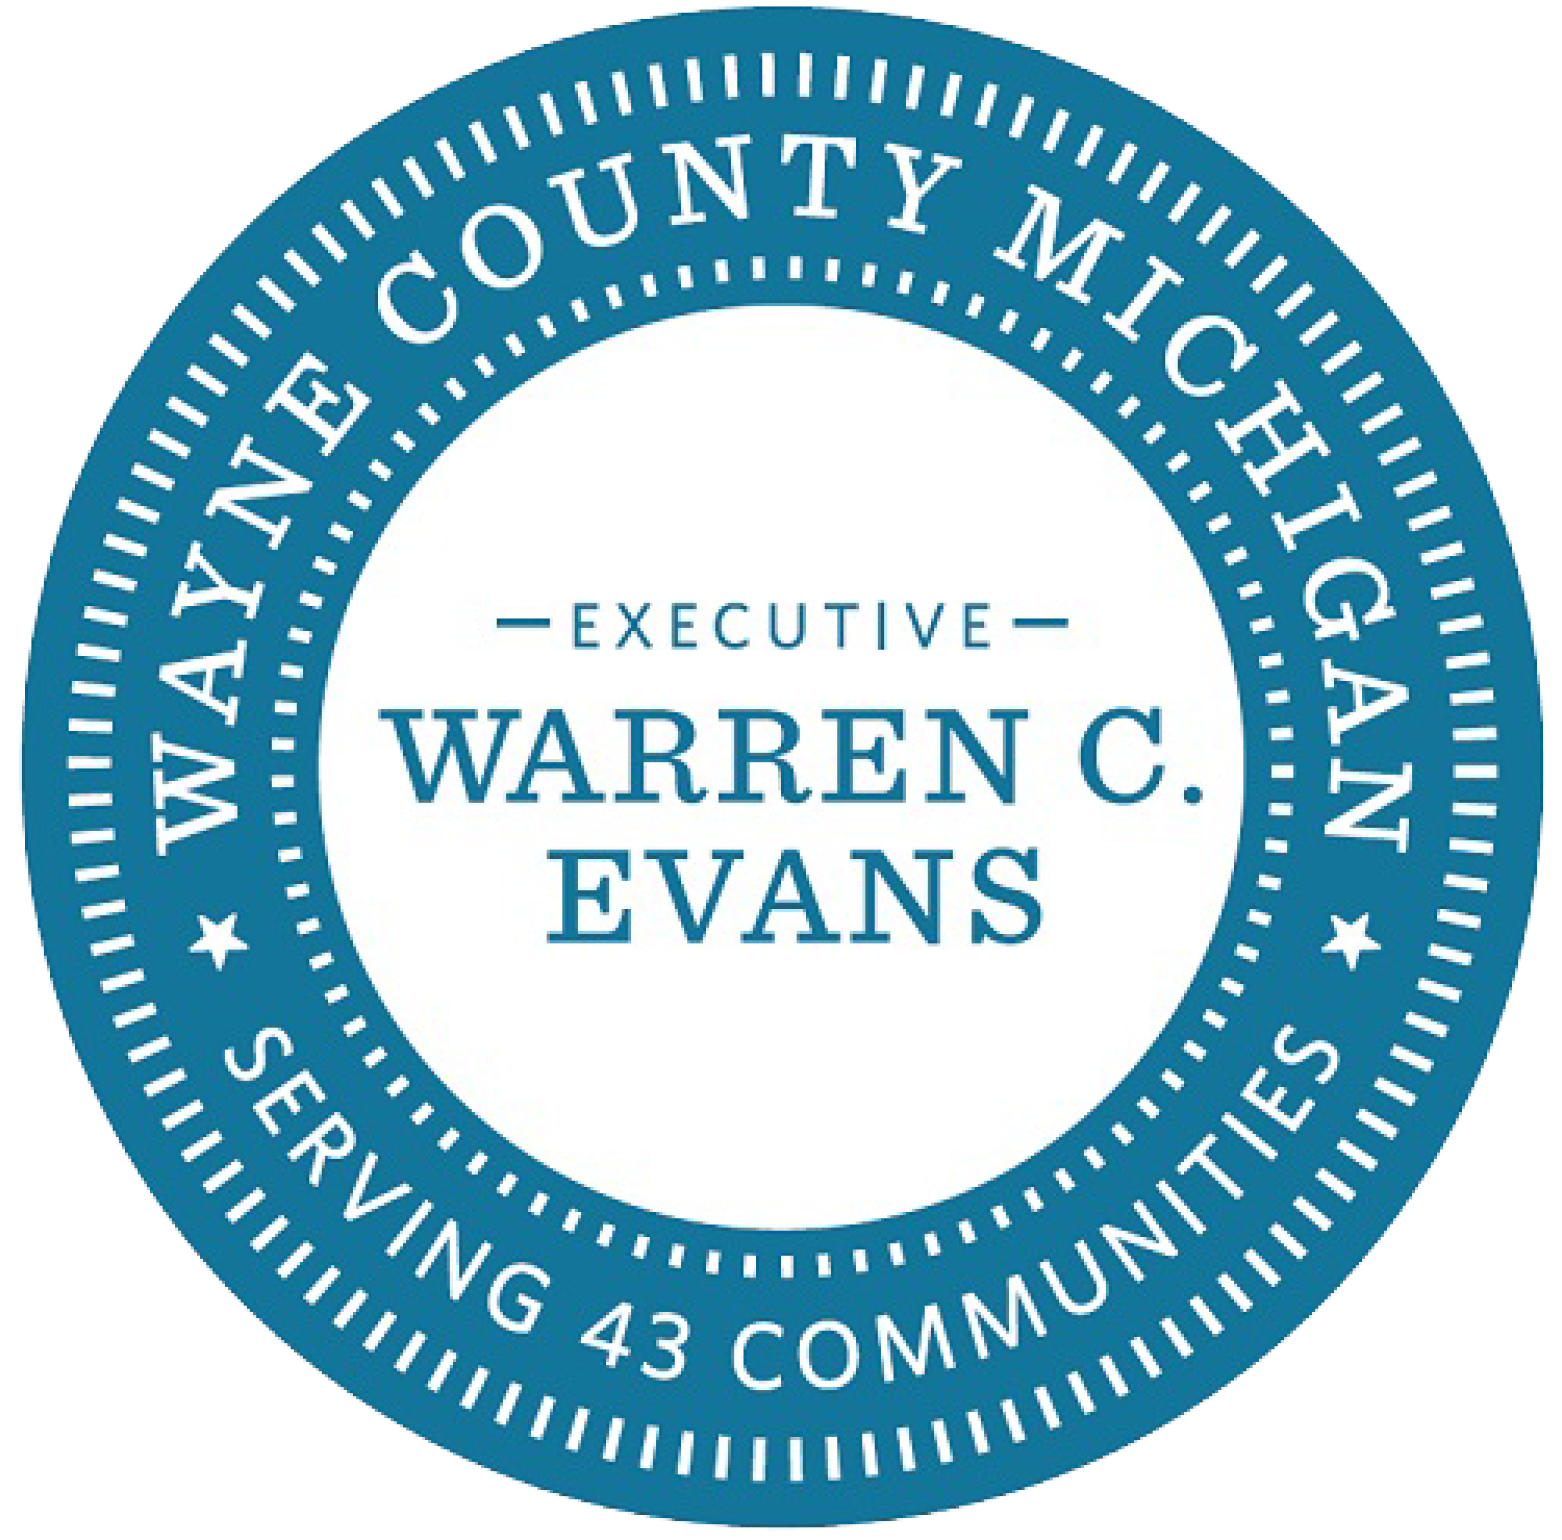 Warren Evans, Wayne County Executive